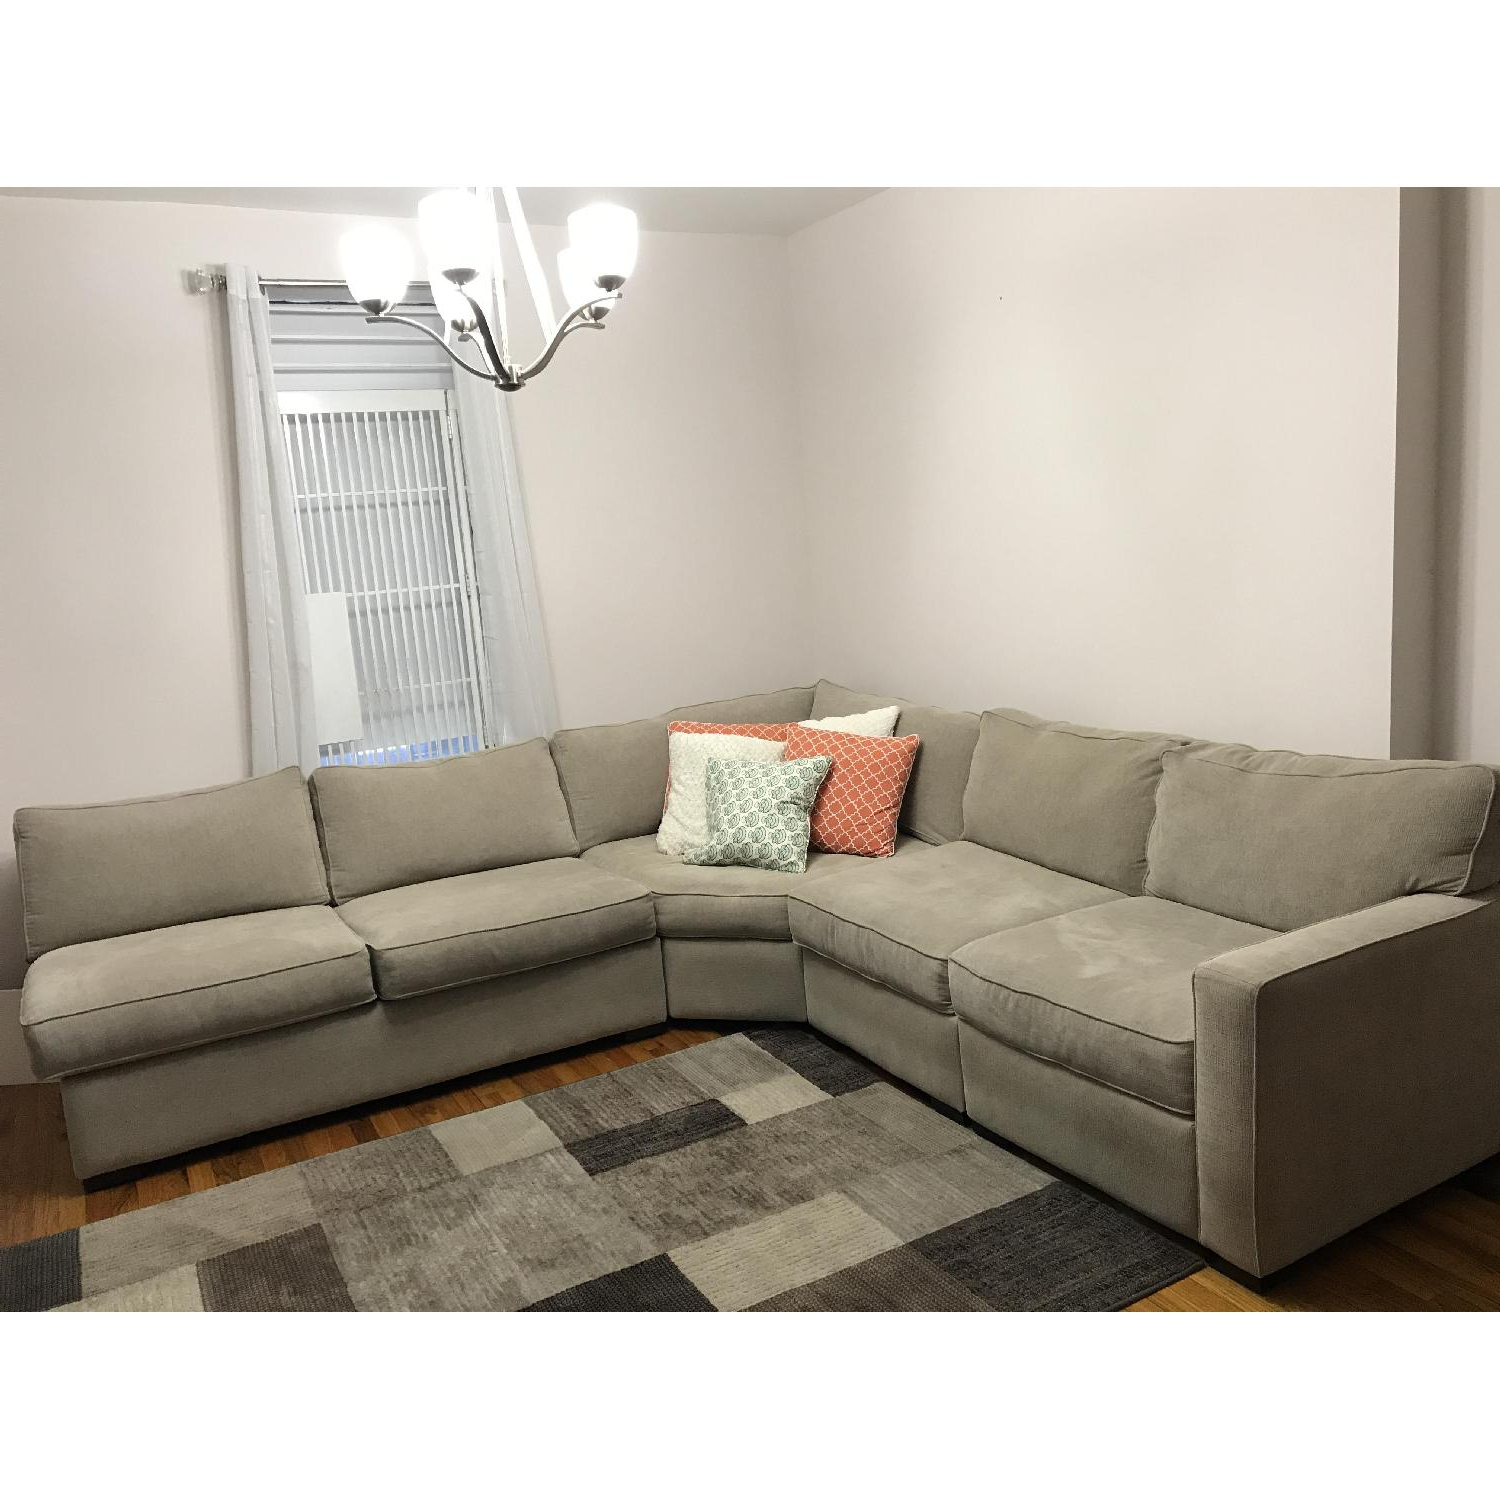 Magnolia Home Homestead 4 Piece Sectionals By Joanna Gaines Pertaining To Newest Magnolia Home Joanna Gaines Homestead Threece Sectional Sofa Destin (View 11 of 20)